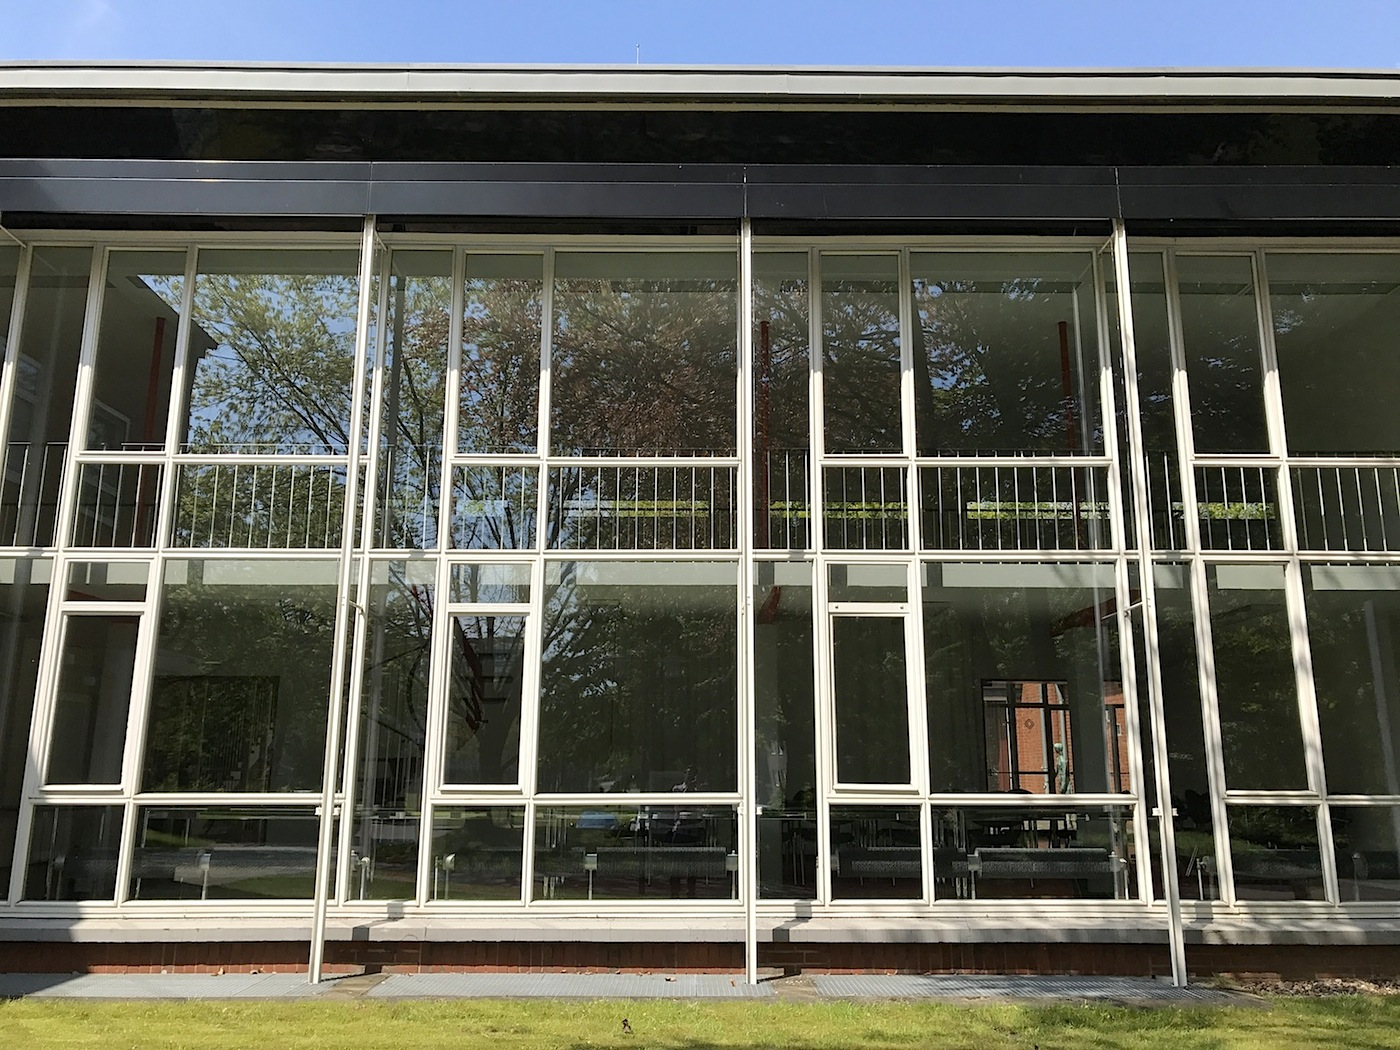 Grimme Institute. Transparency, levity, and the successful mixture of glass, steel, and brick characterise the construction, which was renovated in 2005.